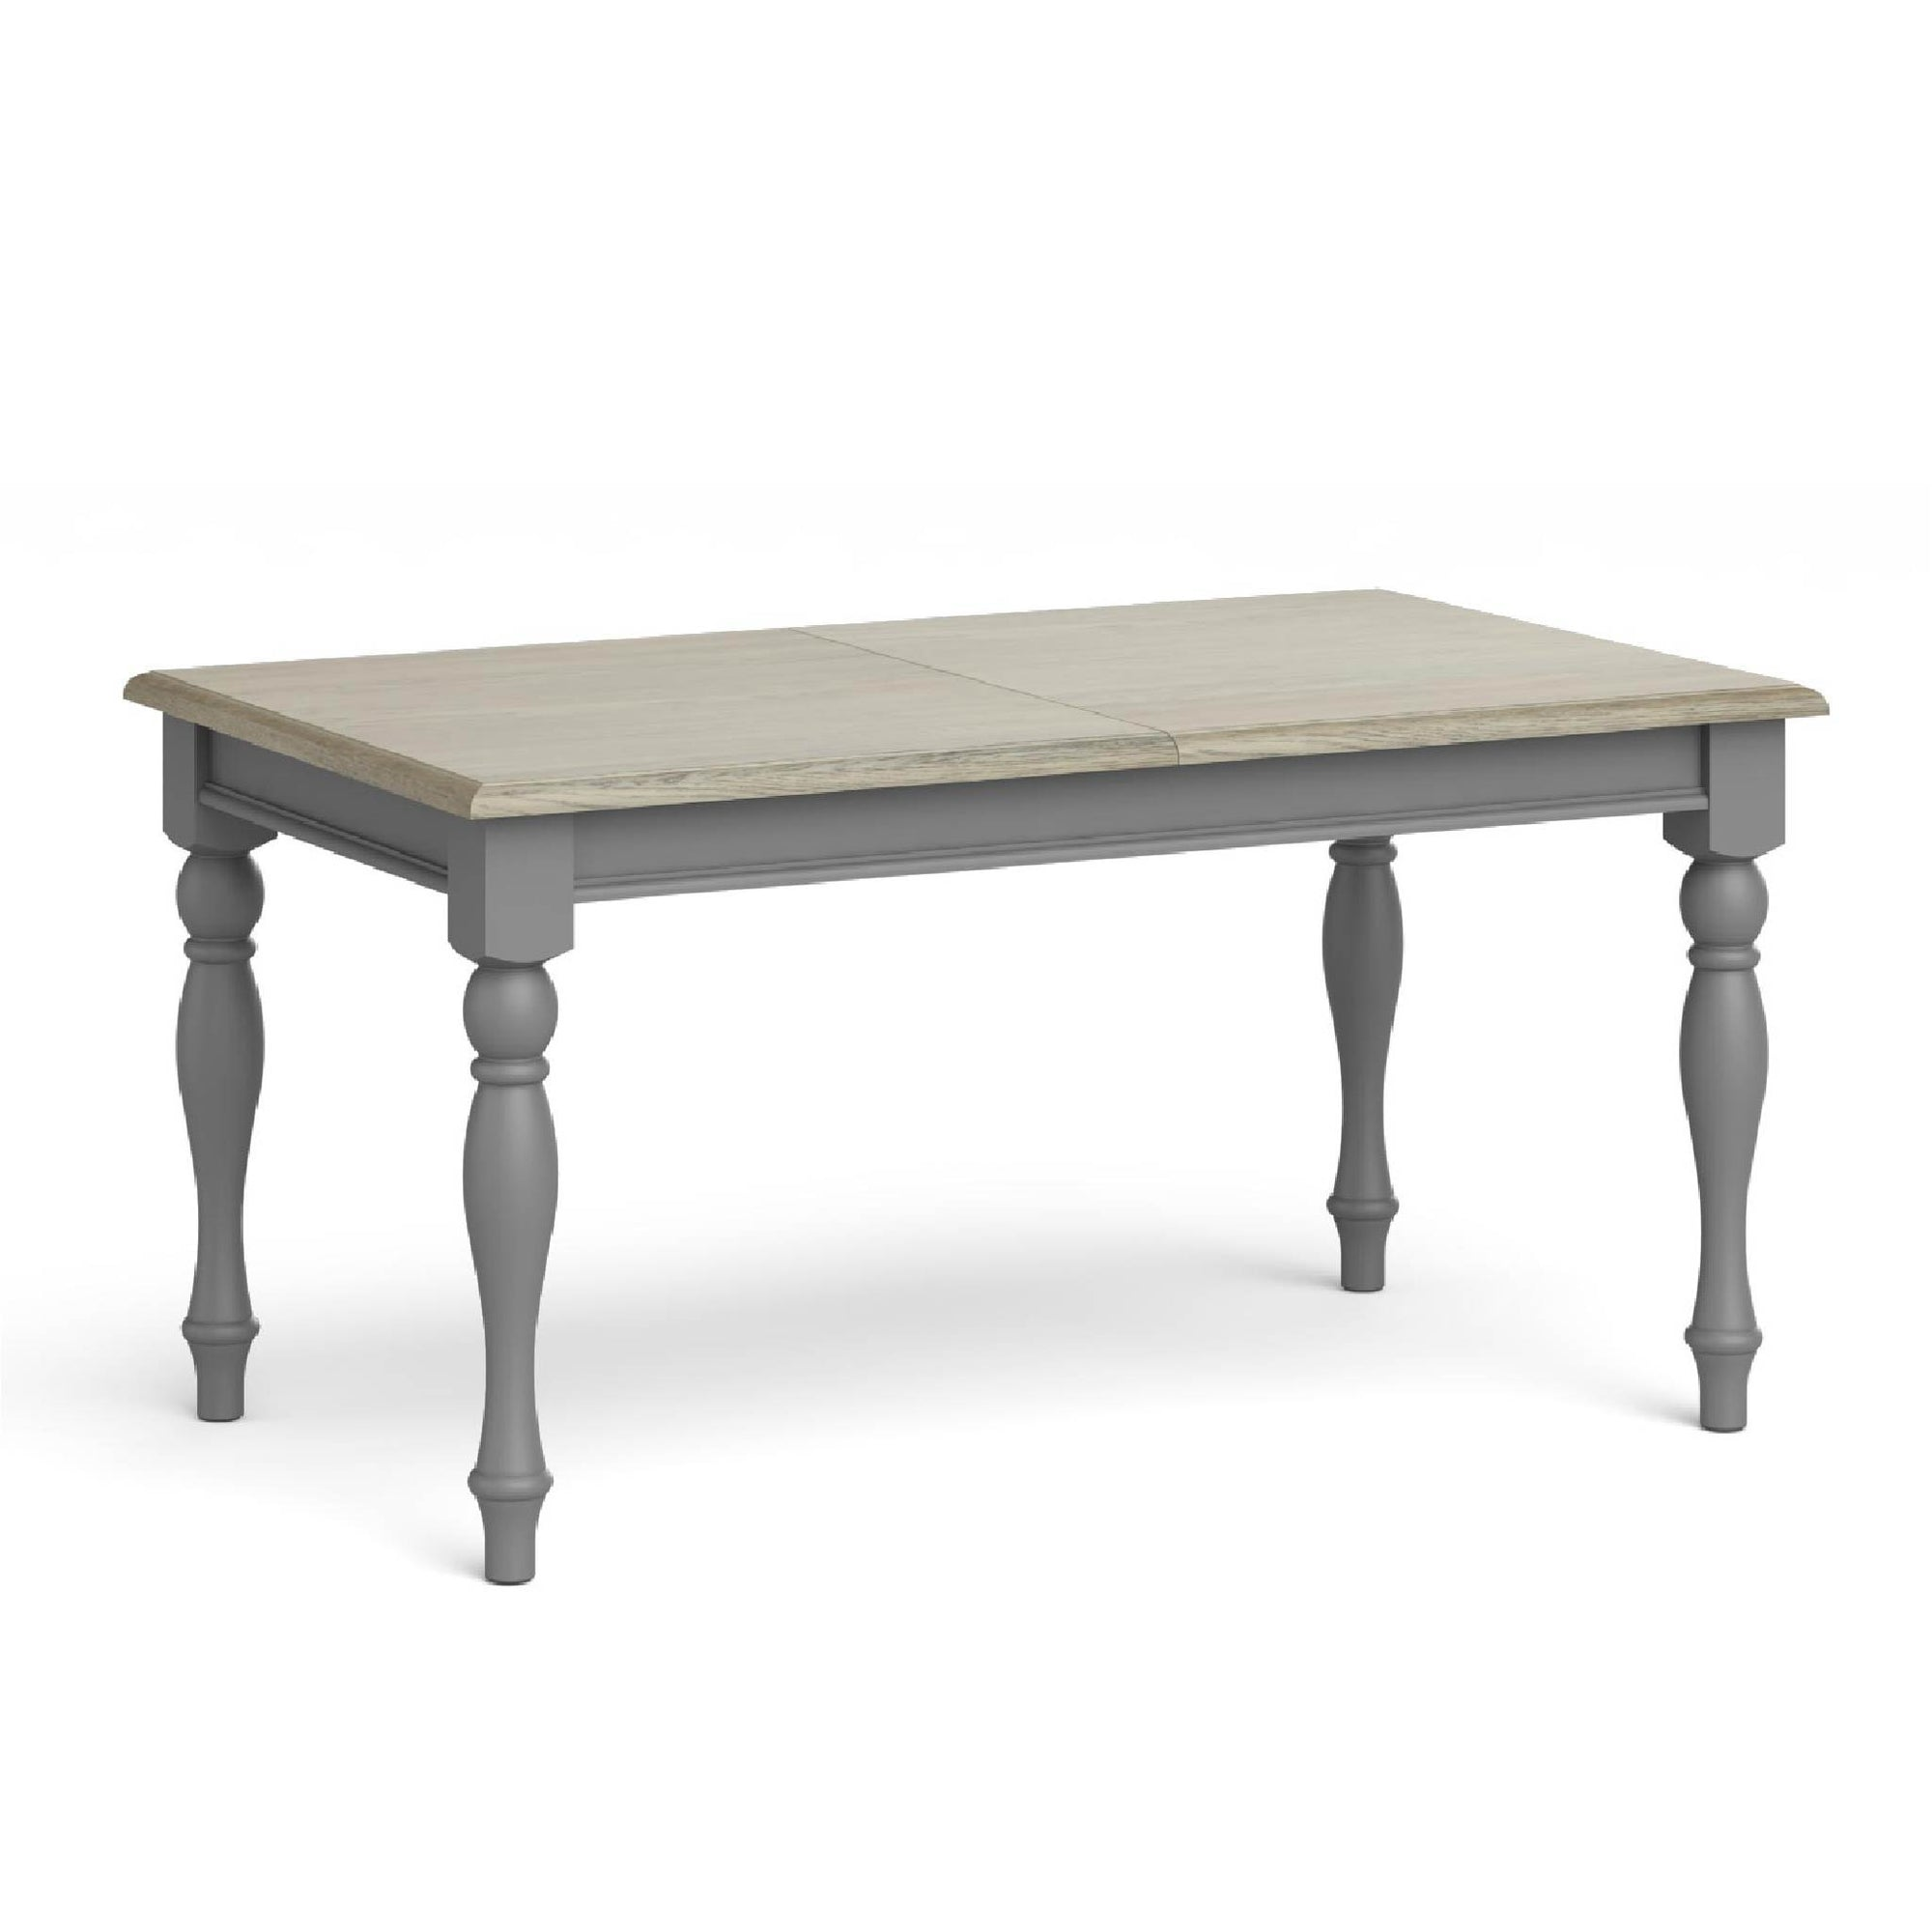 The Mulsanne Grey Small Extending Dining Table from Roseland Furniture